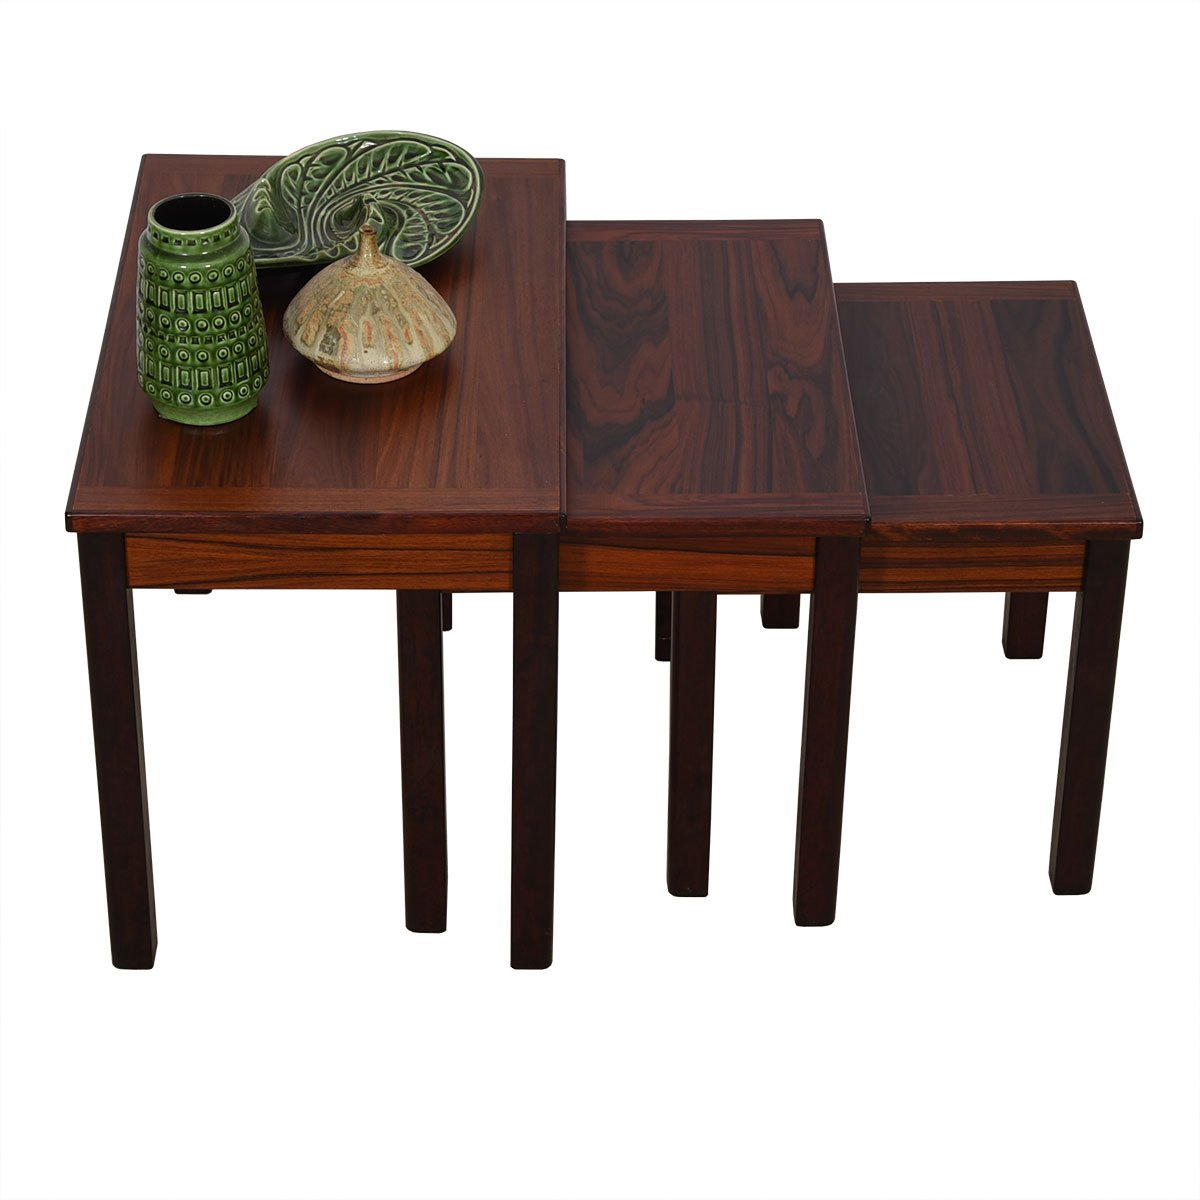 Set of 3 Danish Modern Nesting Tables in Rosewood